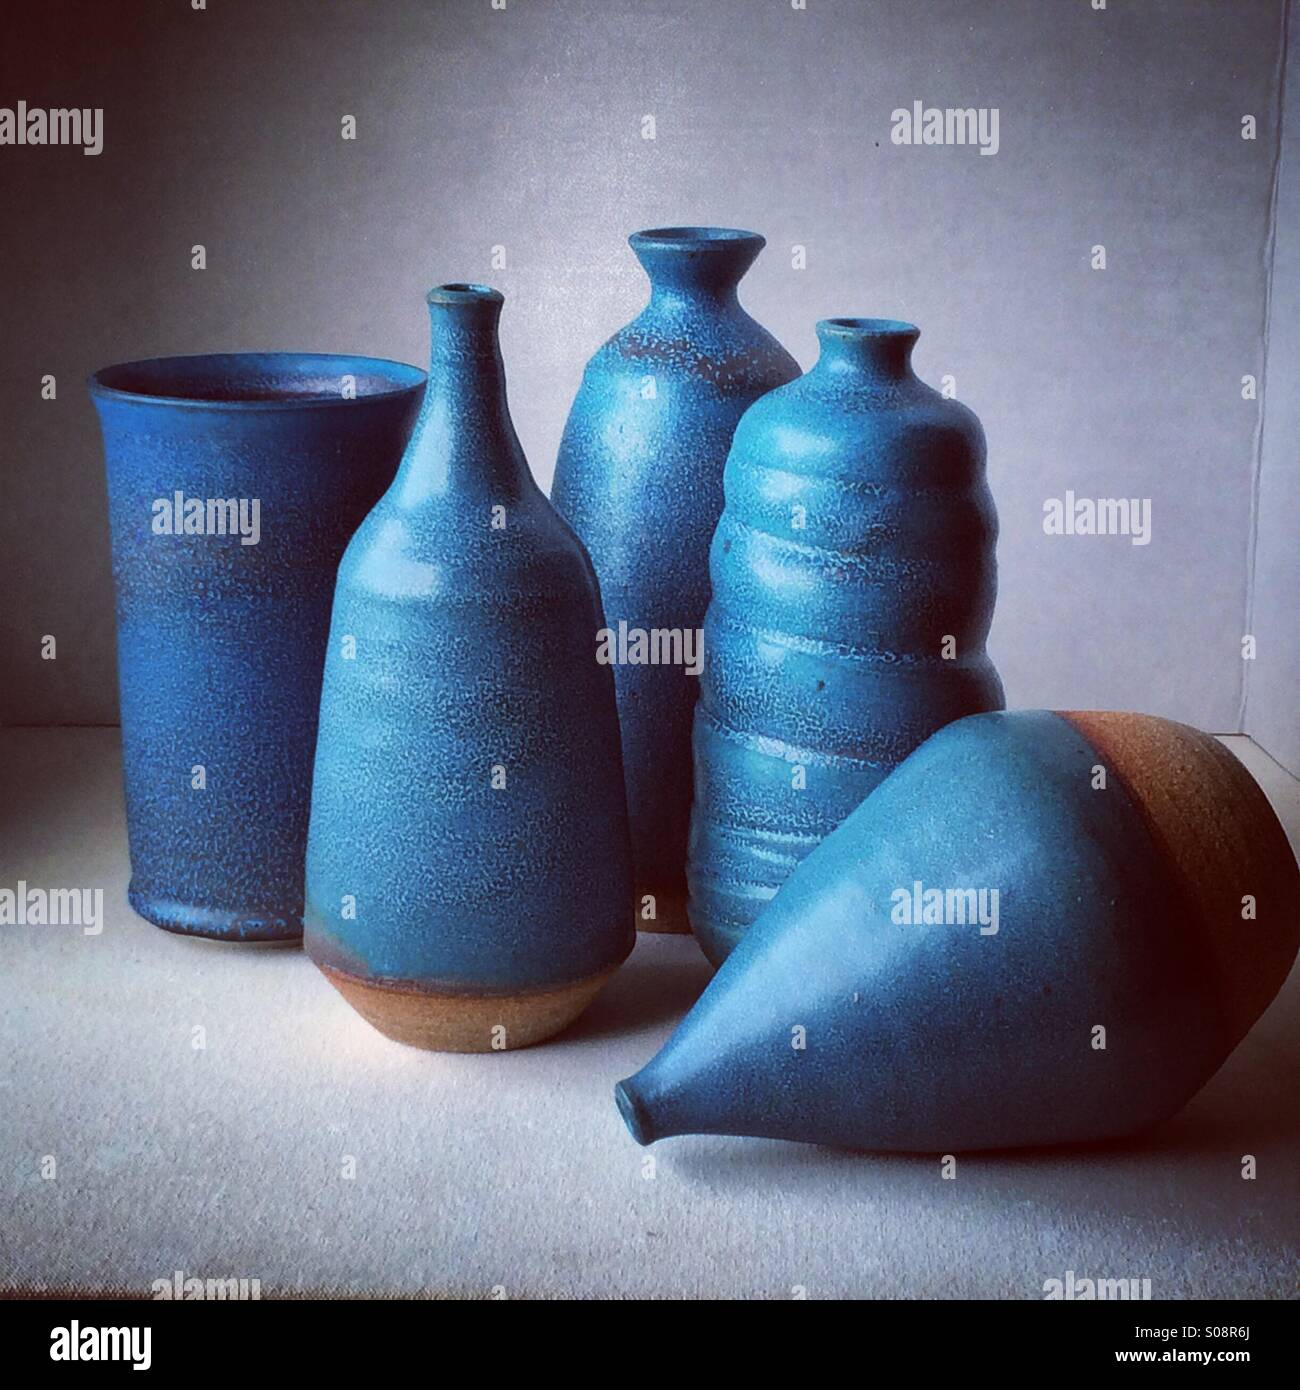 Blue pottery collection - Stock Image